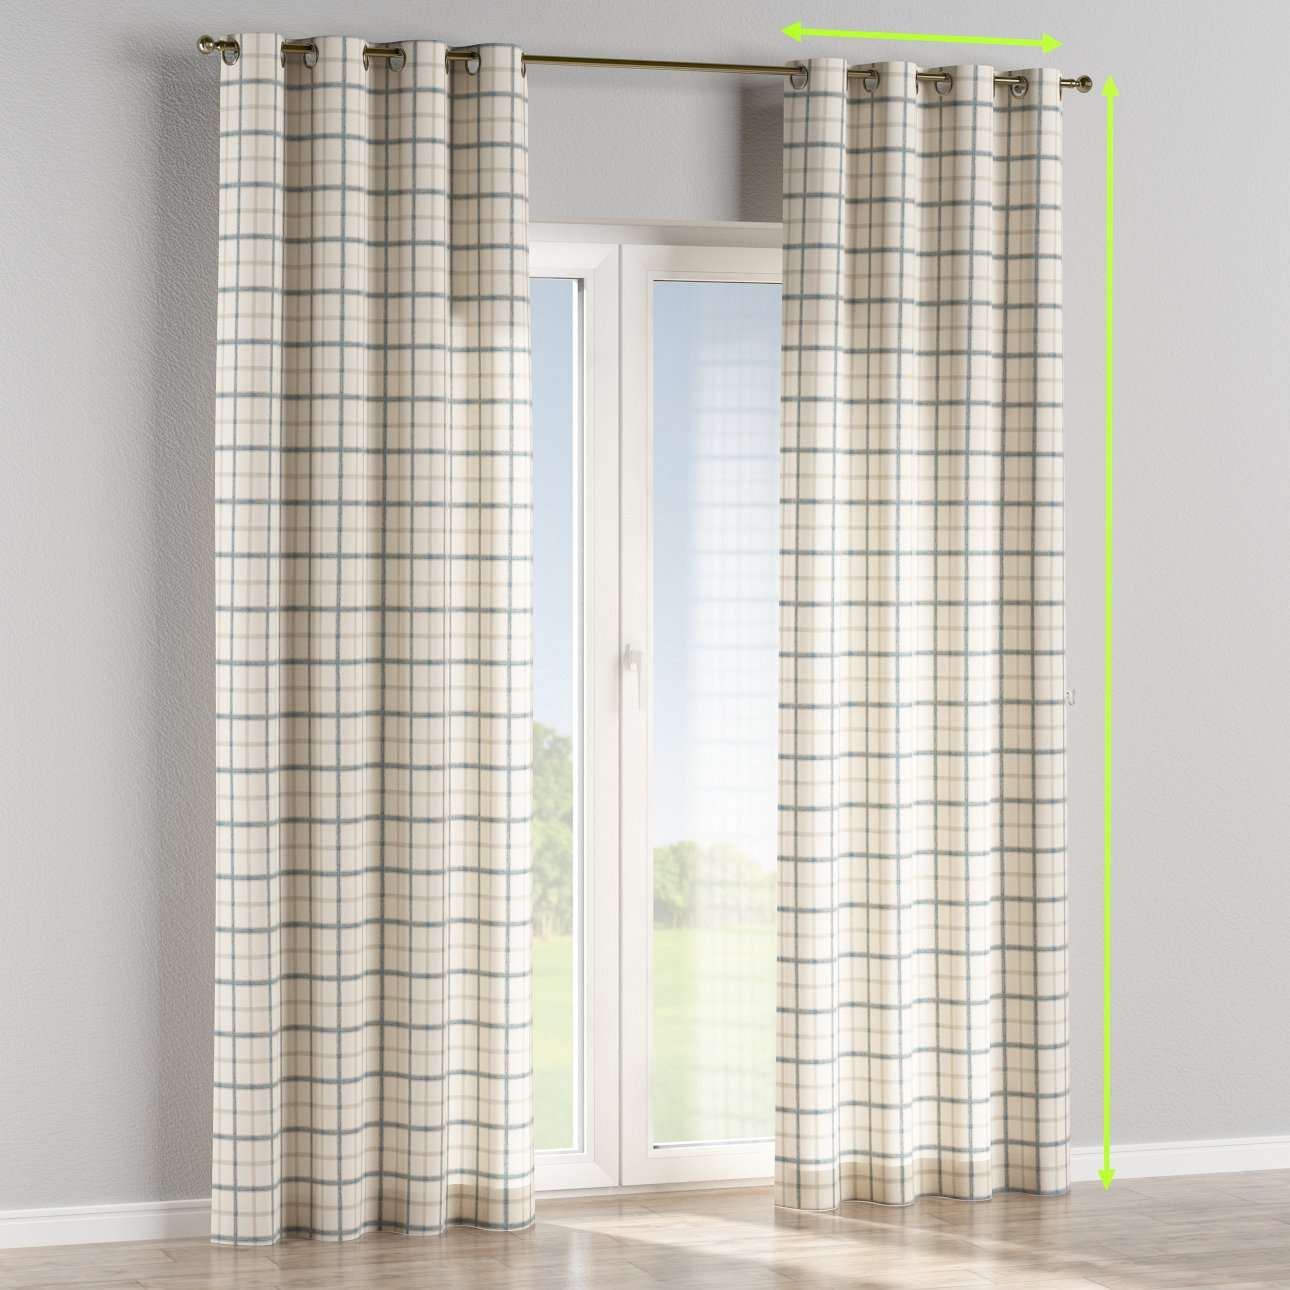 Eyelet curtains in collection Avinon, fabric: 131-66